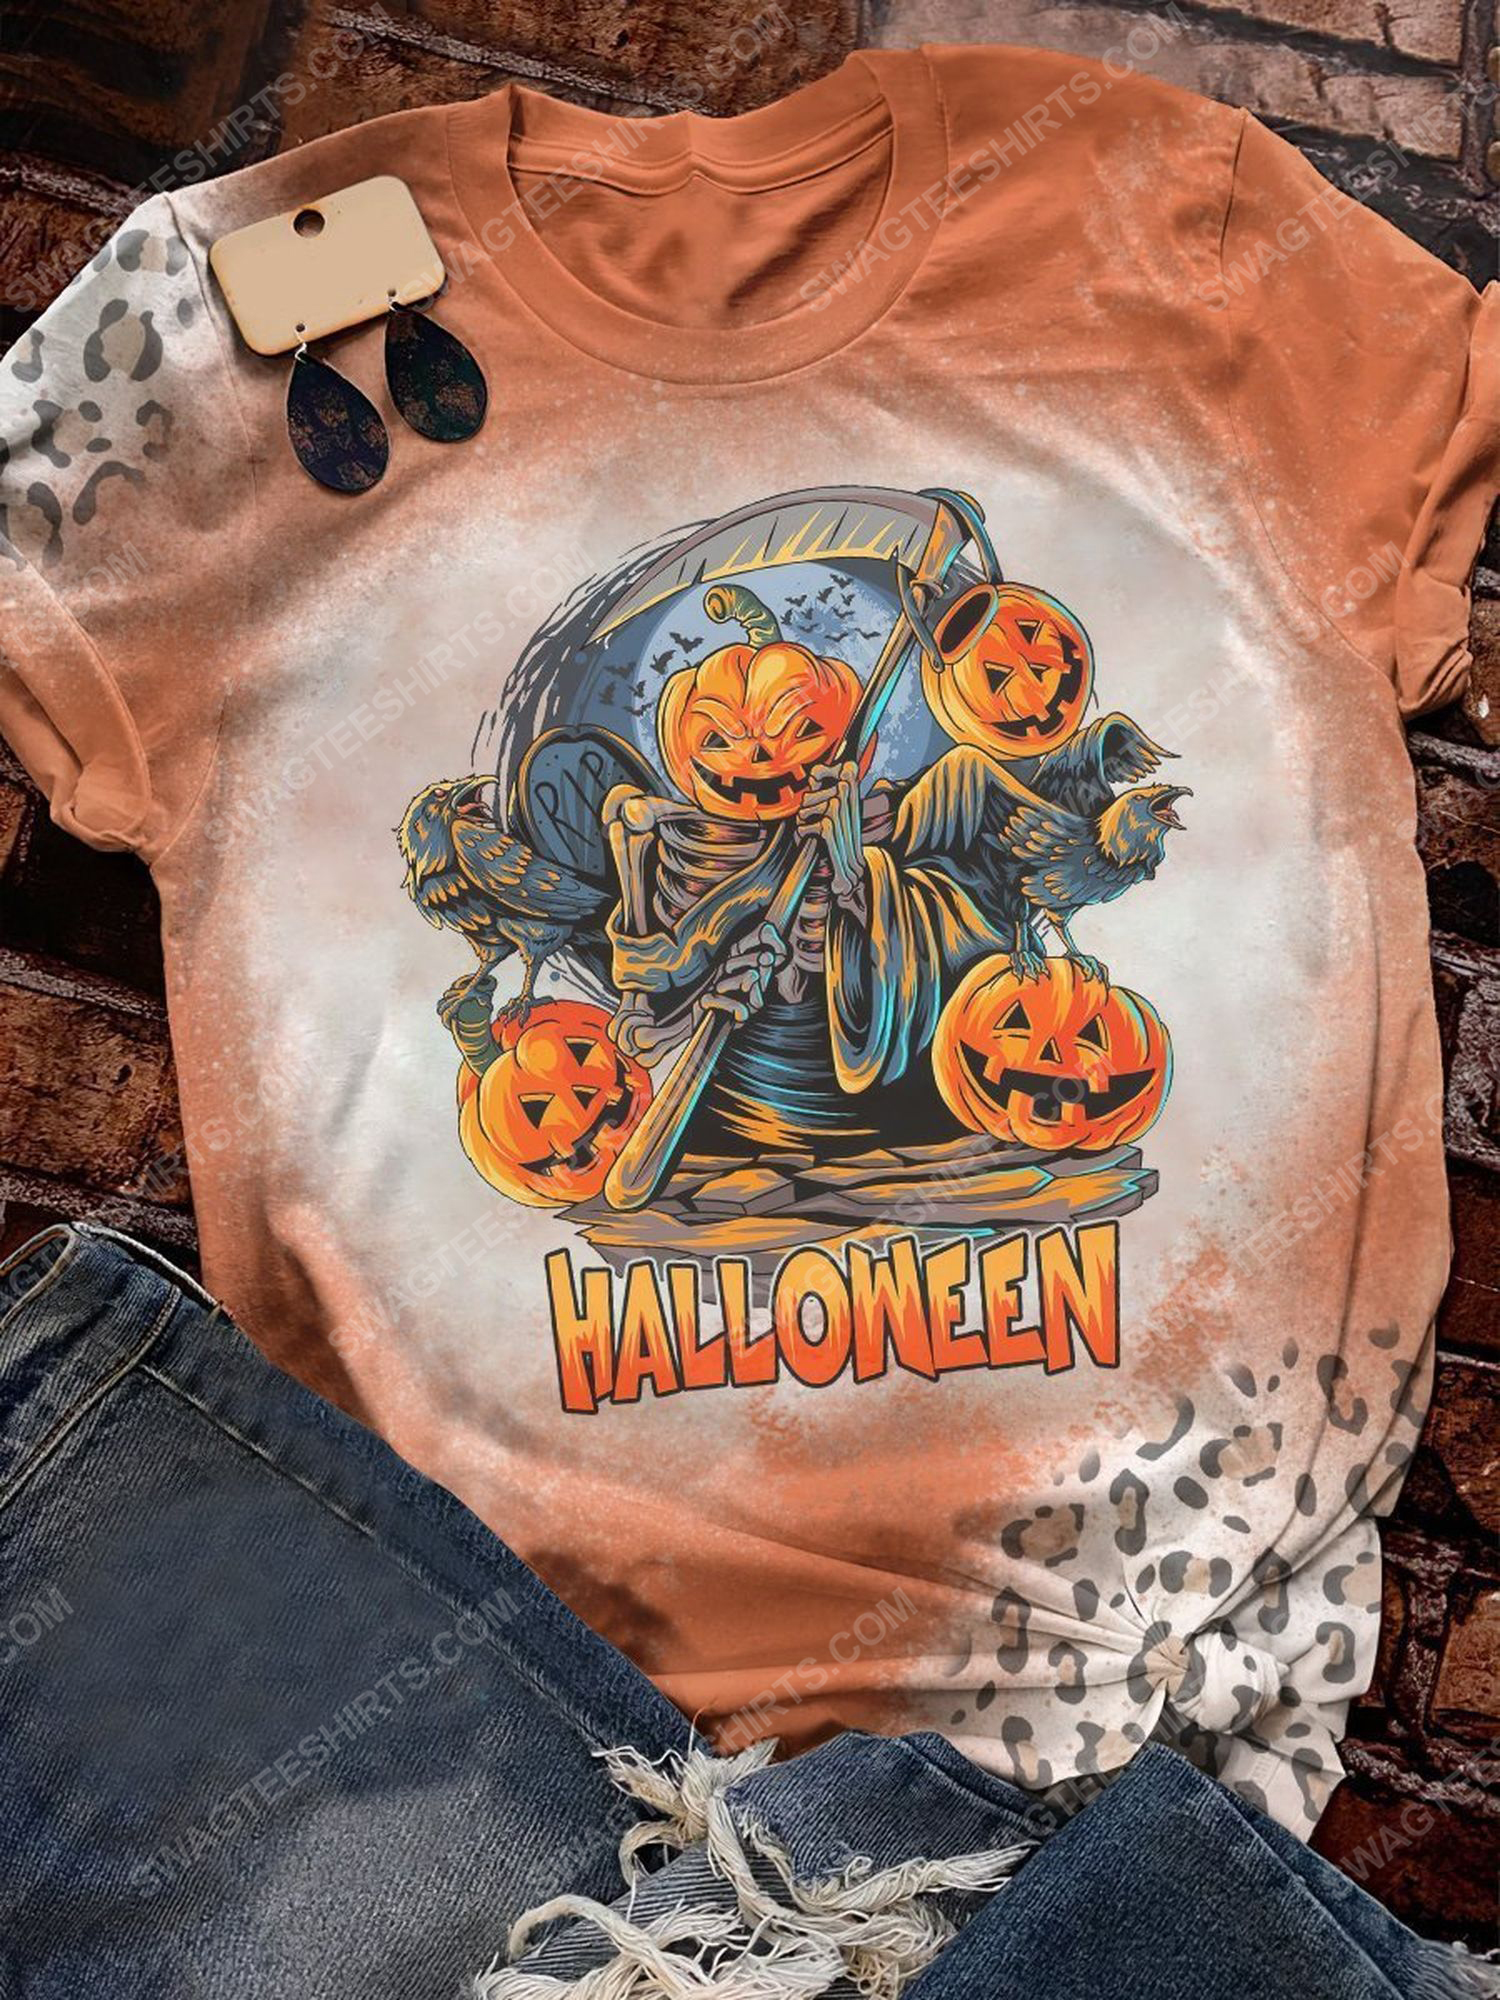 Halloween night and the death with pumpkin head shirt 1 - Copy (2)